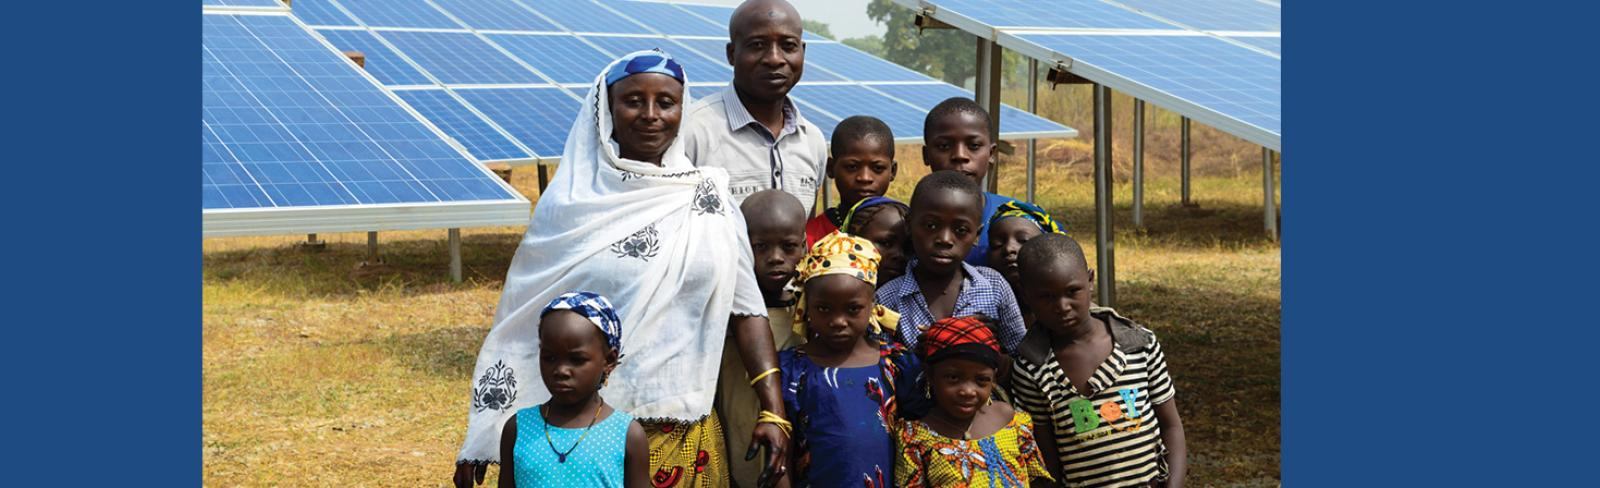 ESMAP Contributes to $68 Million Relief Fund to Protect Energy Access from Covid-19 Fallout in Vulnerable Communities